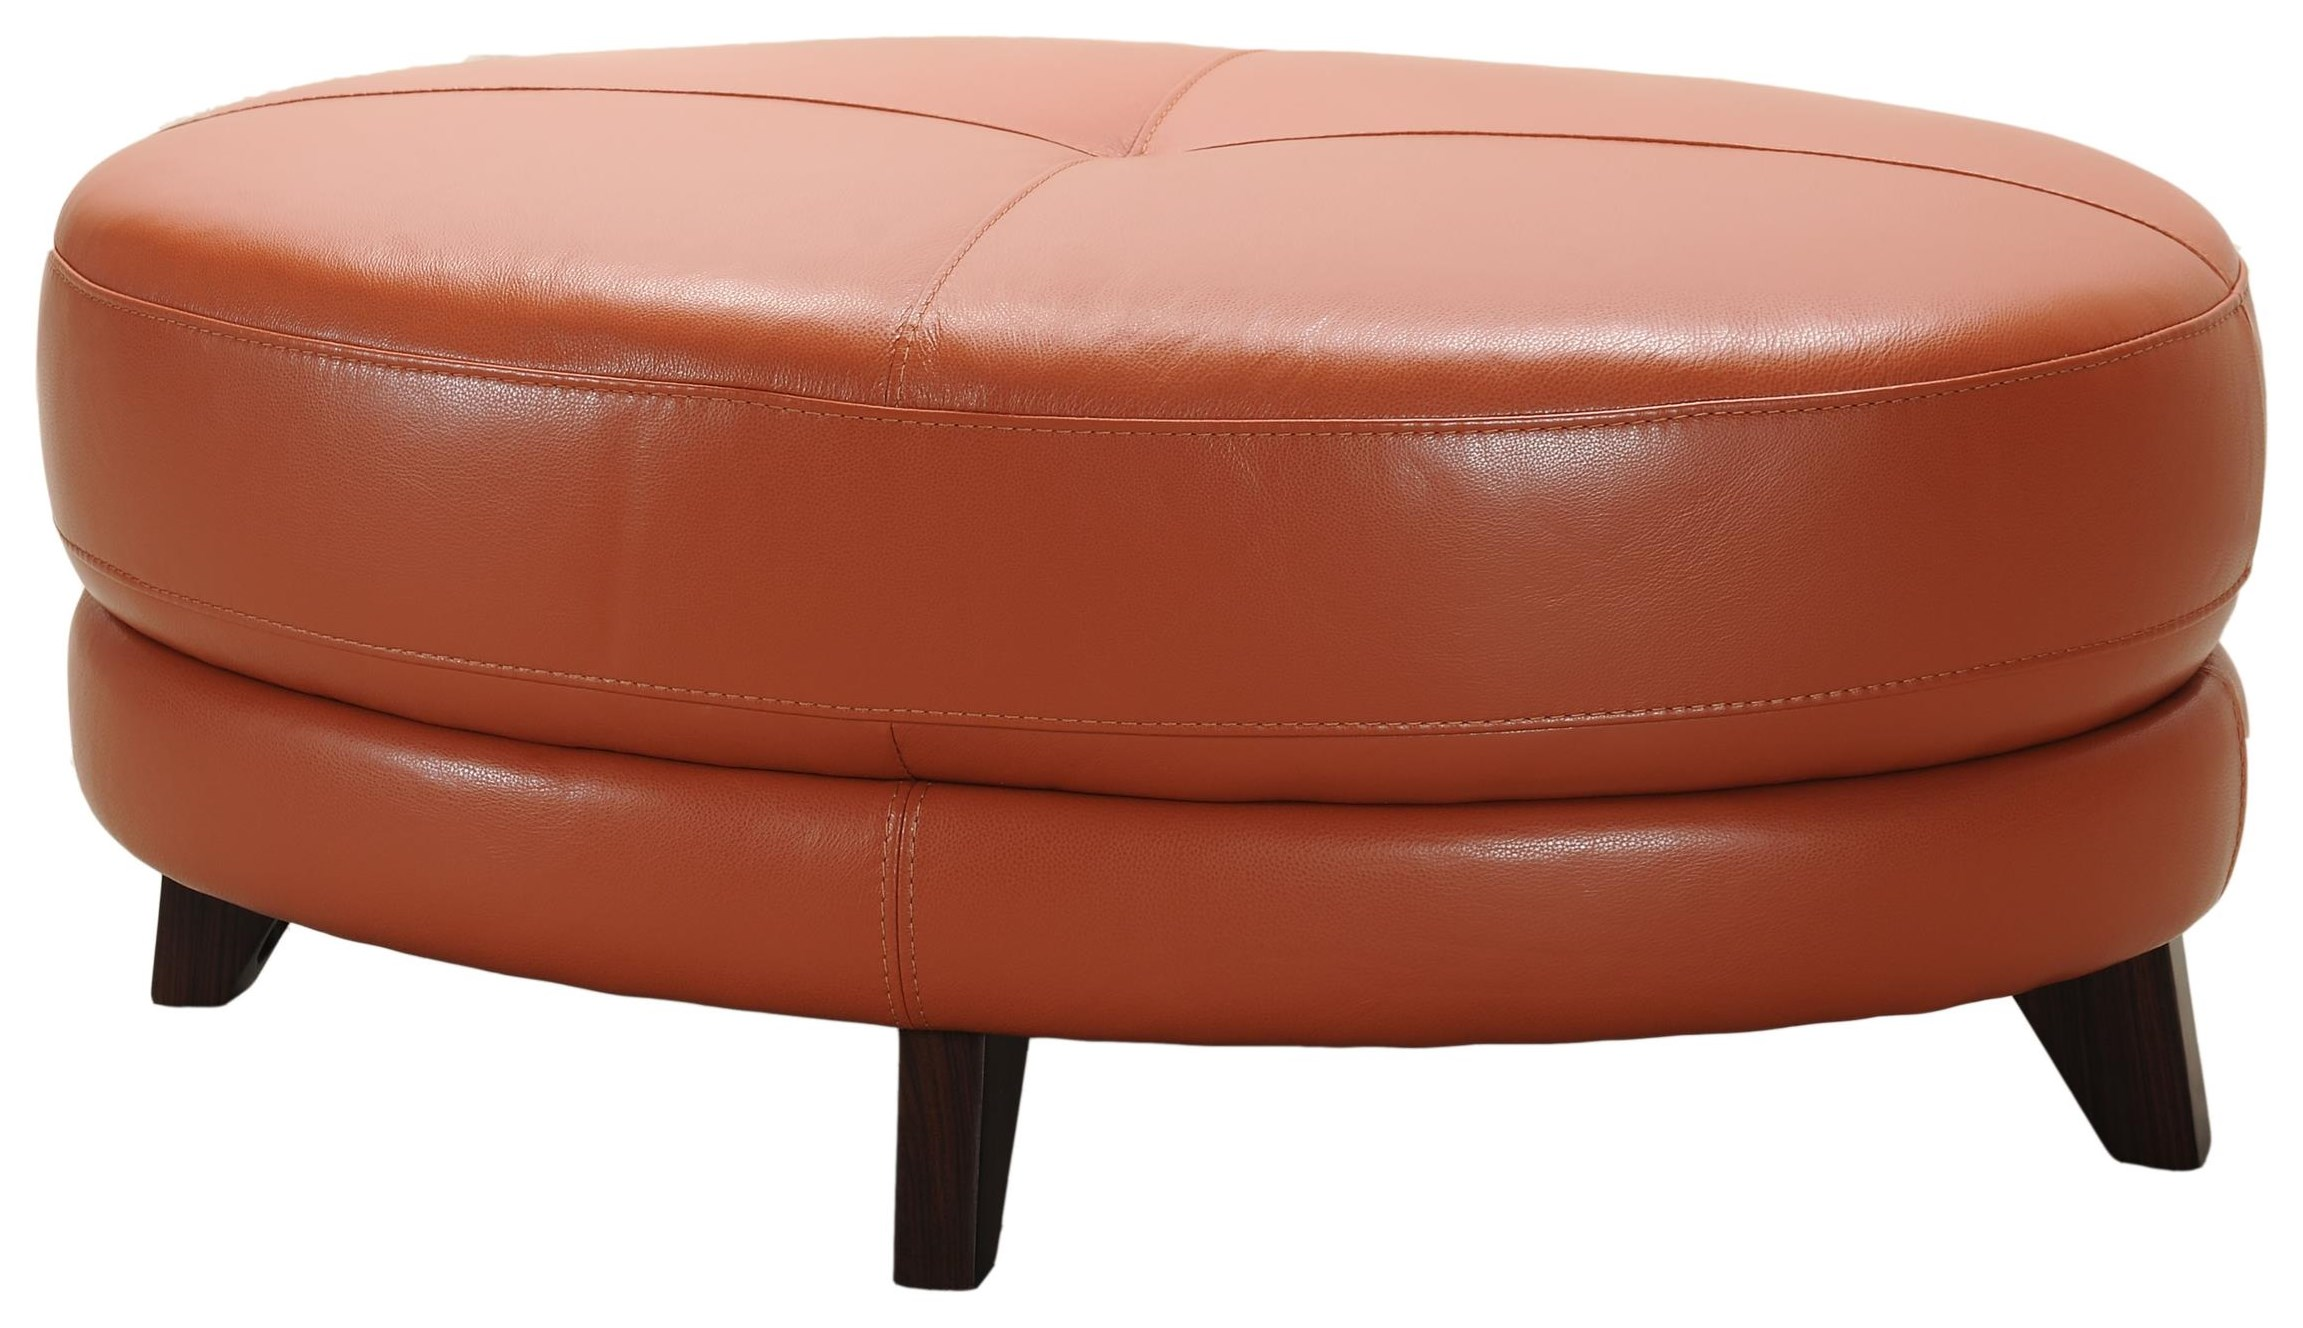 3159 Terracotta Leather Cocktail Ottoman by Violino at Dunk & Bright Furniture